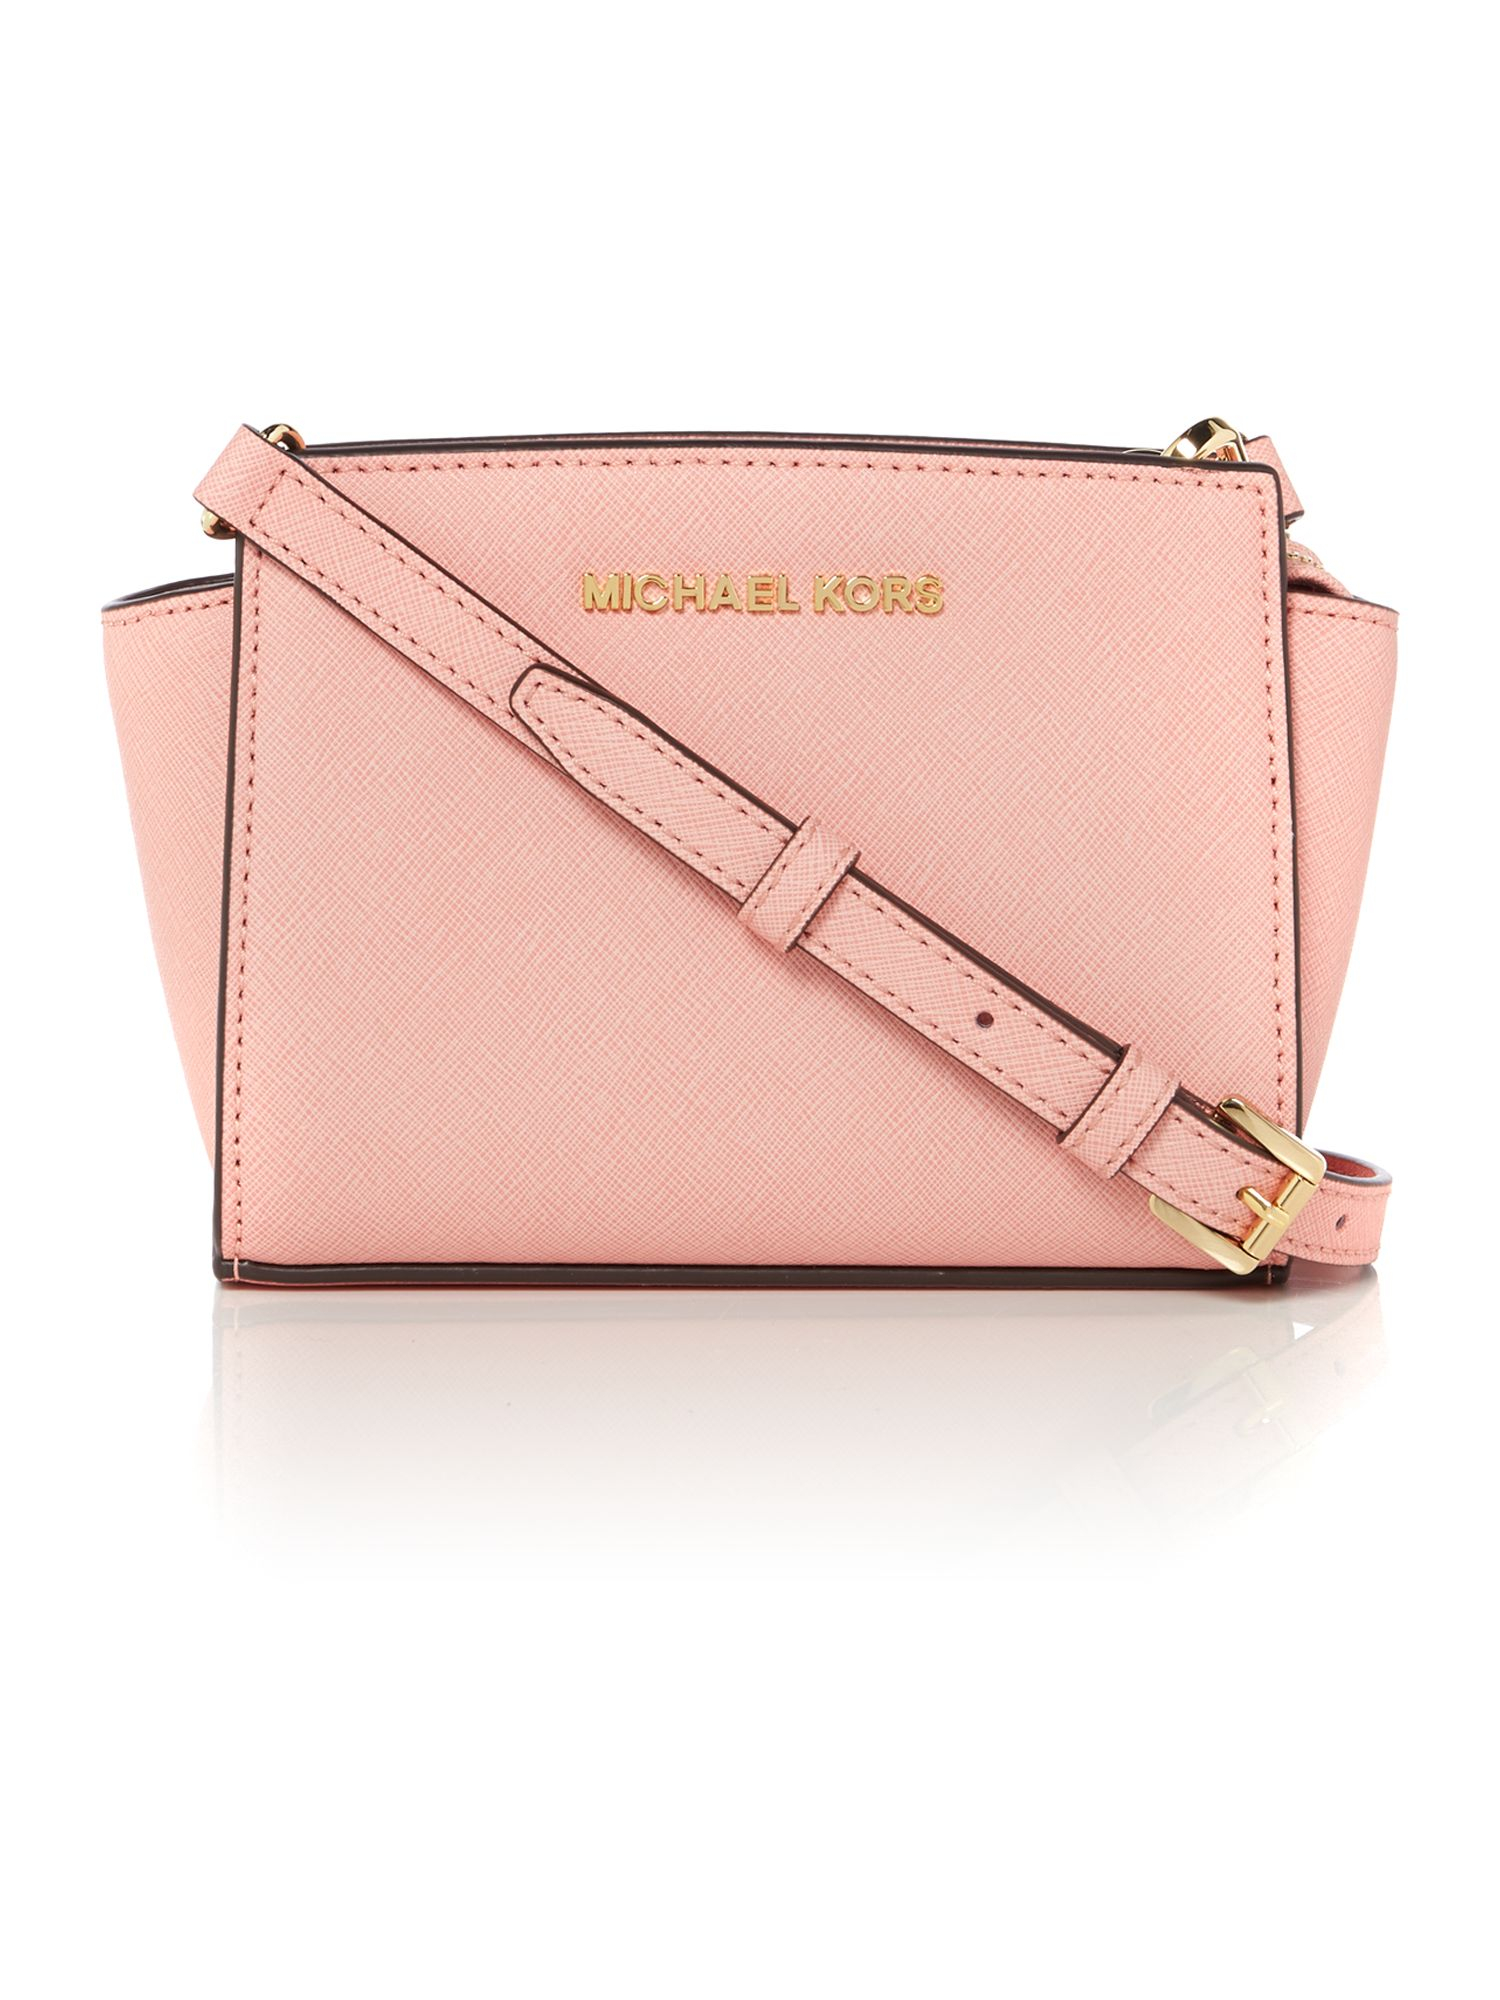 michael kors selma pink small cross body bag in pink lyst. Black Bedroom Furniture Sets. Home Design Ideas